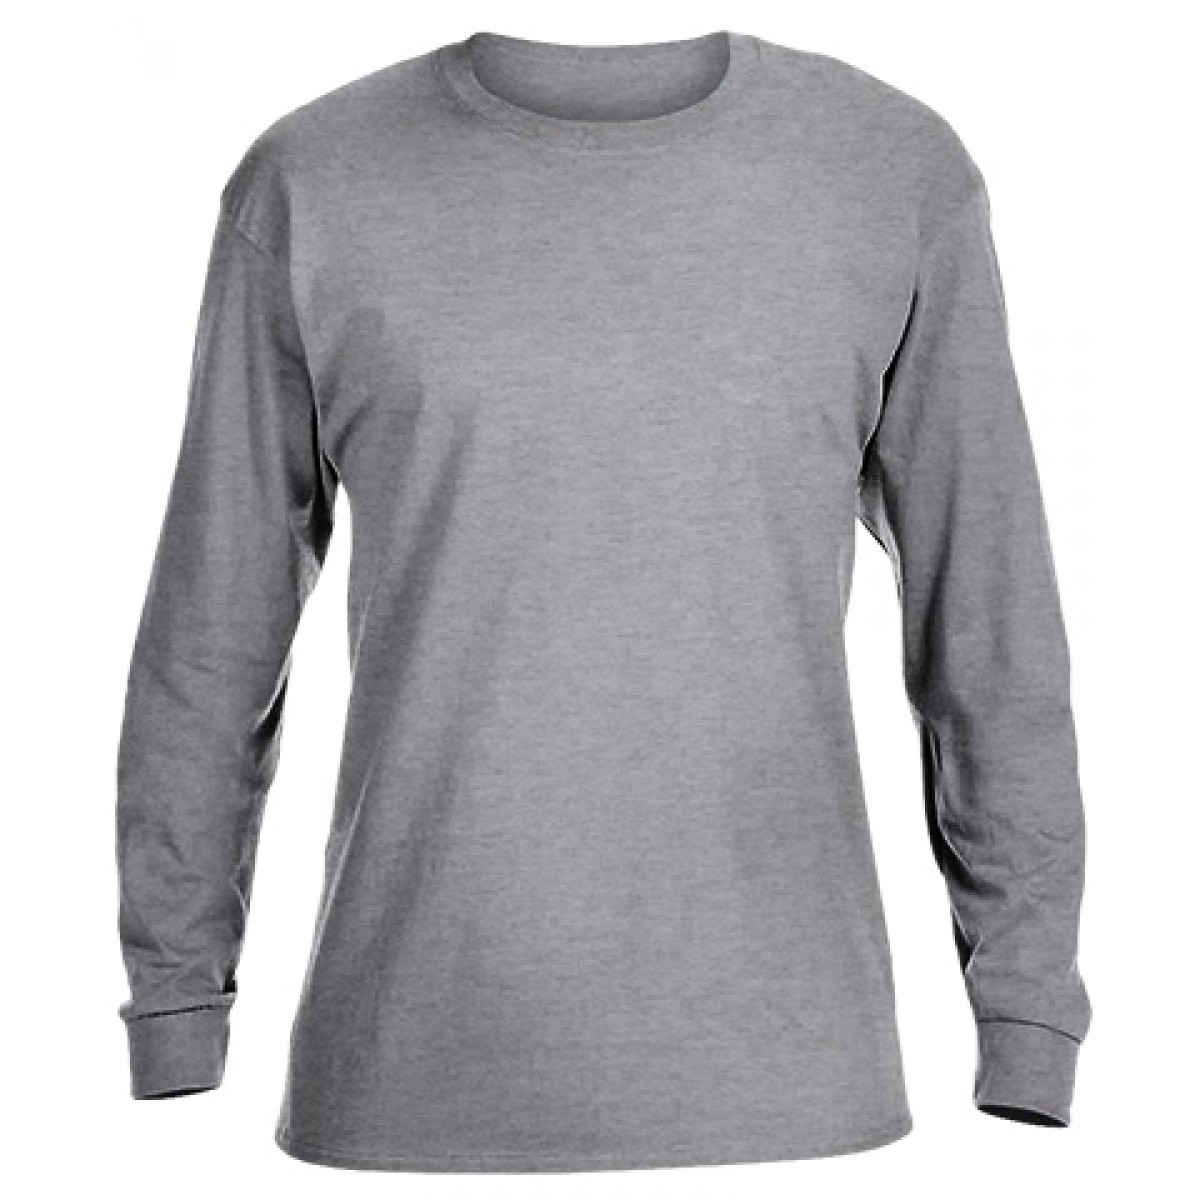 Heavy Cotton Long-Sleeve Adidas Shirt-Sports Grey-YM